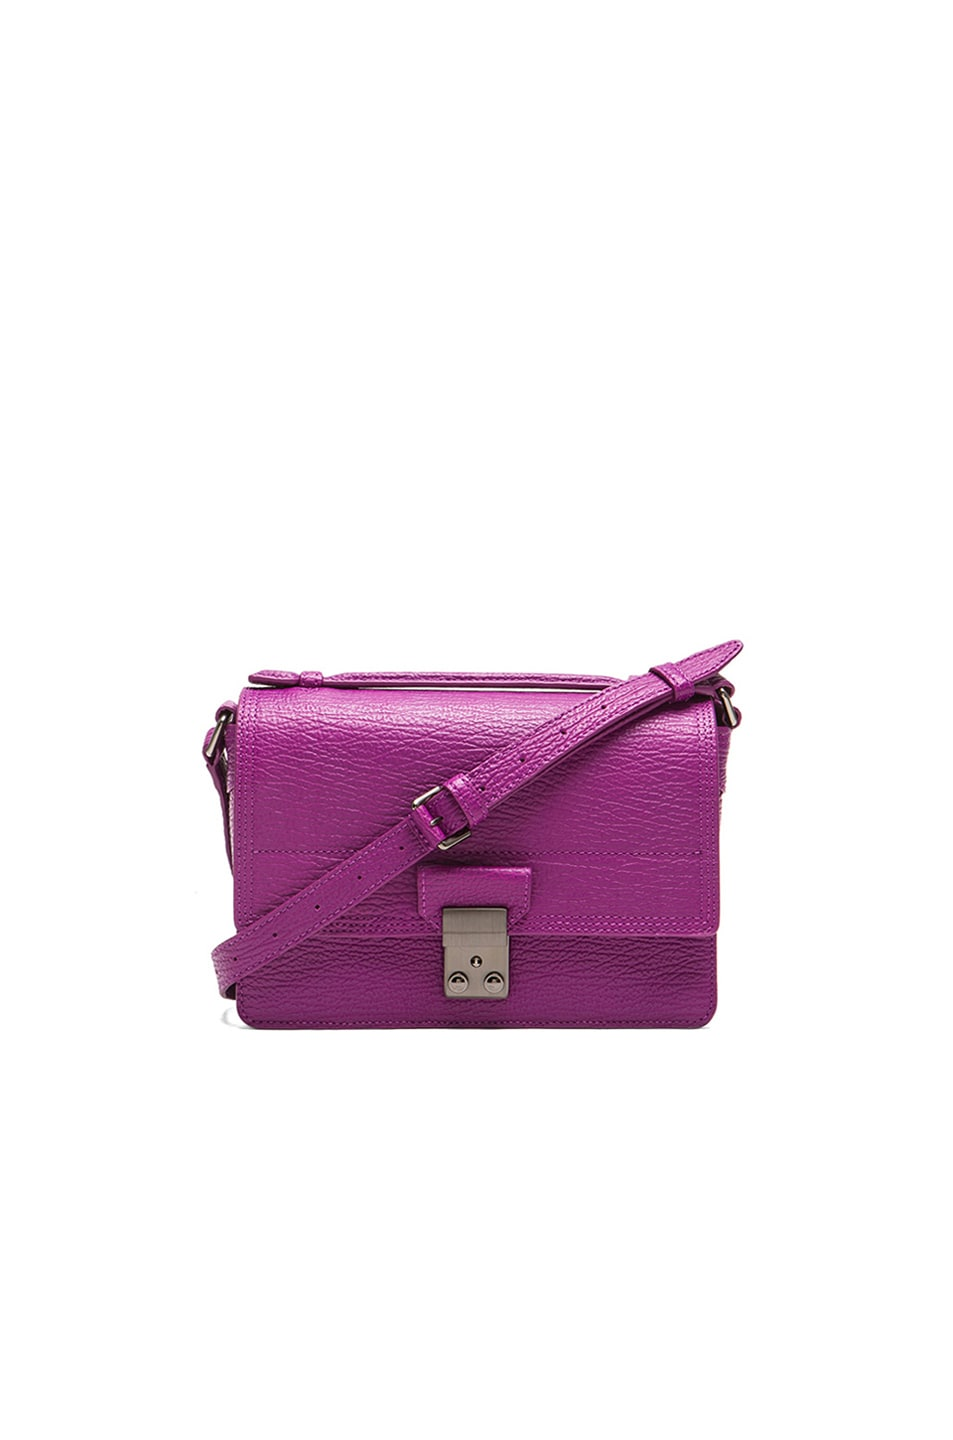 Image 1 of 3.1 phillip lim Mini Pashli Messenger in Orchid & Gunmetal